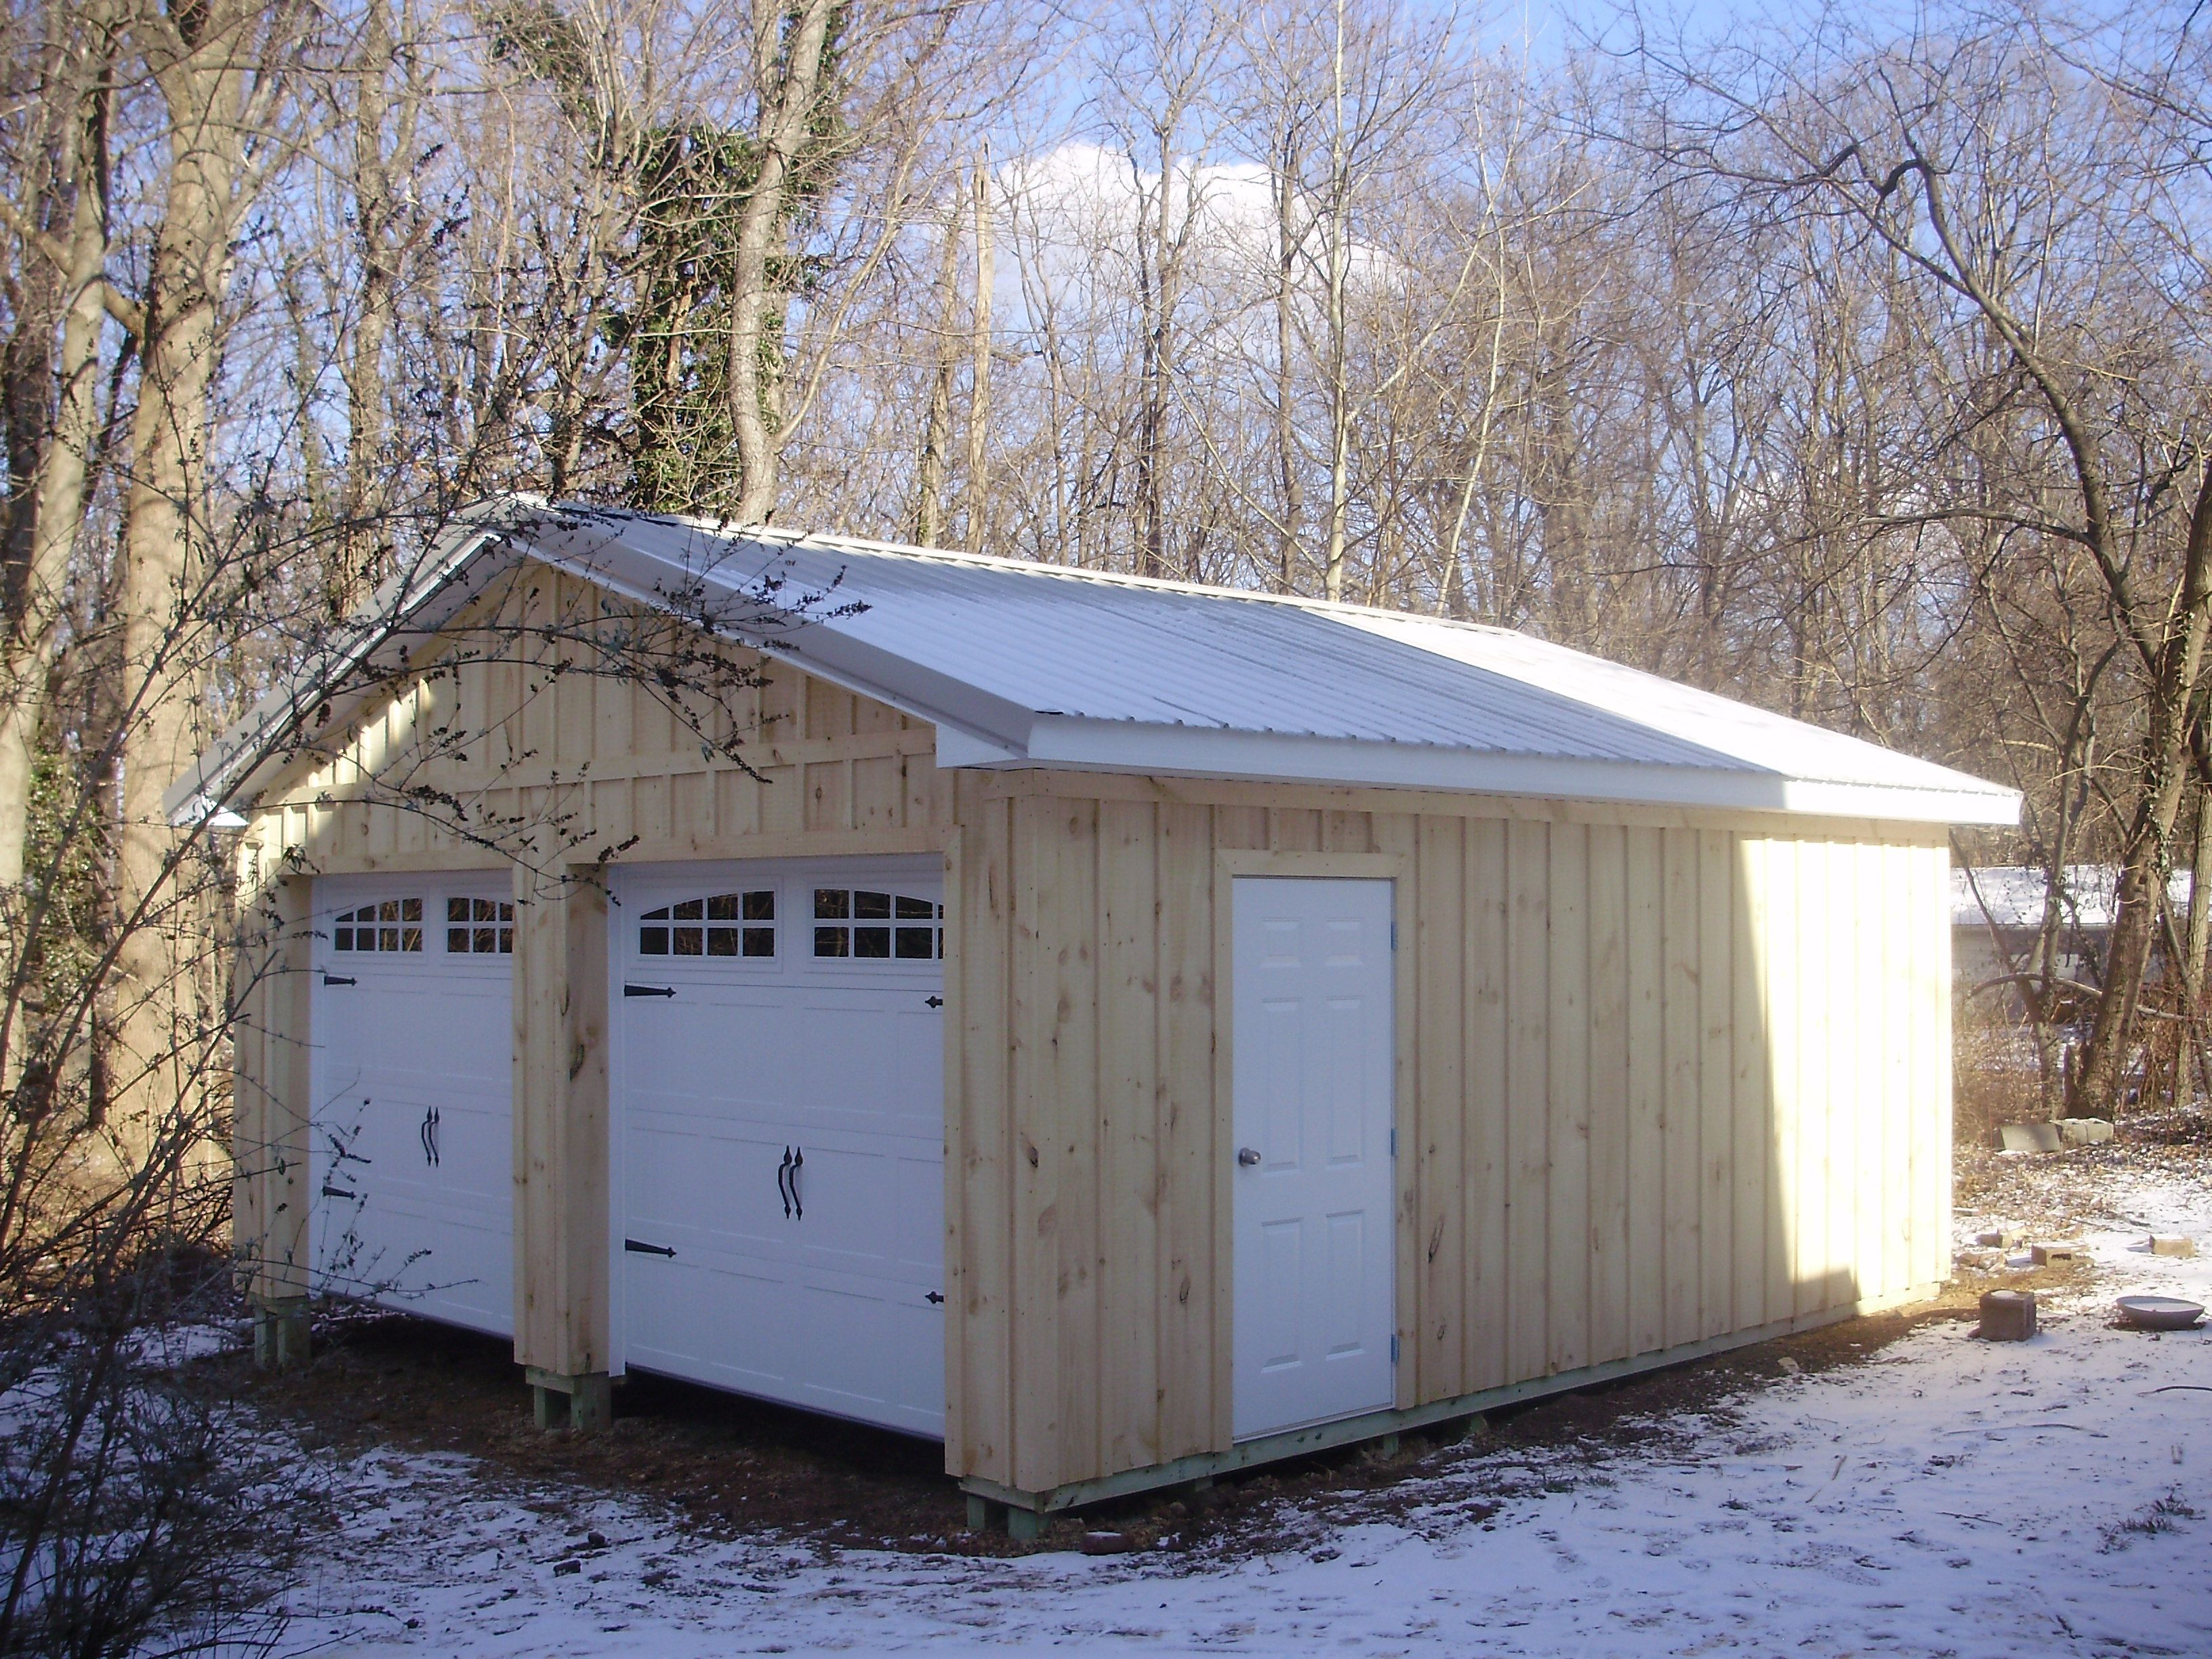 30 W X 36 L X 10 4 H Id 469 Total Cost 16 806 Pole Buildings Pole Building Garage Roof Styles